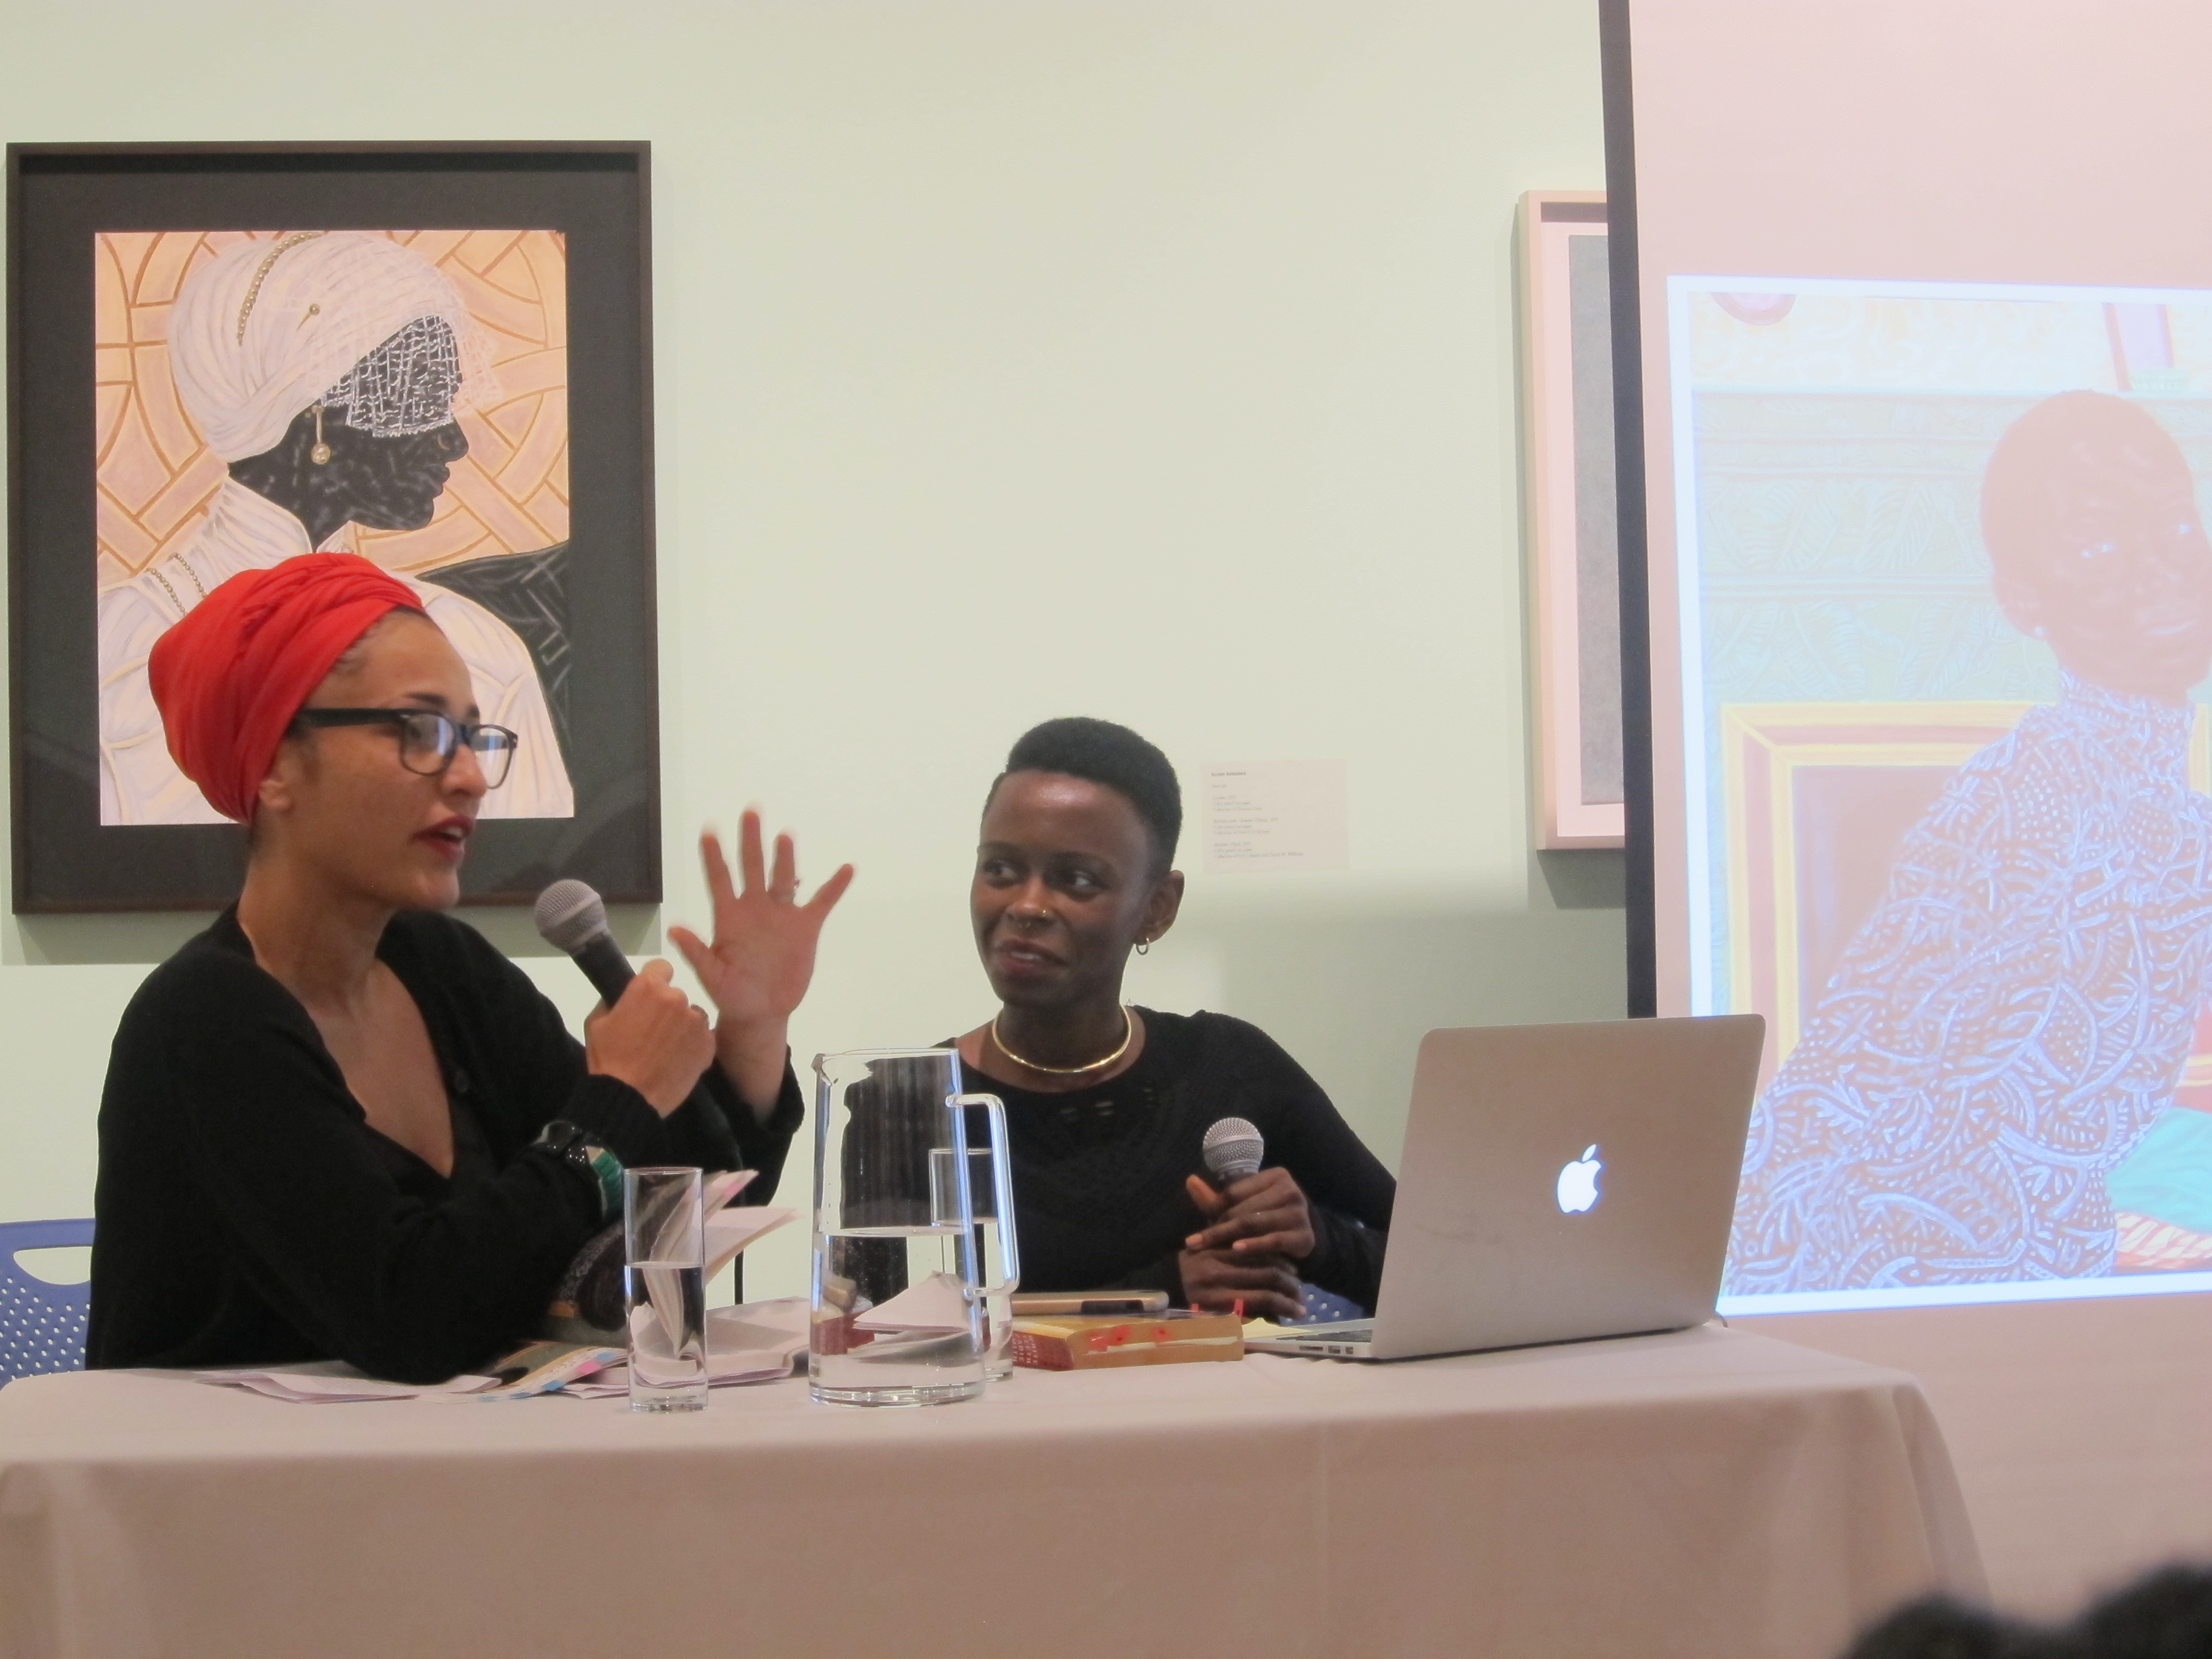 'Mark-Making As a Land Your Eyes Traverse': Toyin Ojih Odutola Talks with Zadie Smith